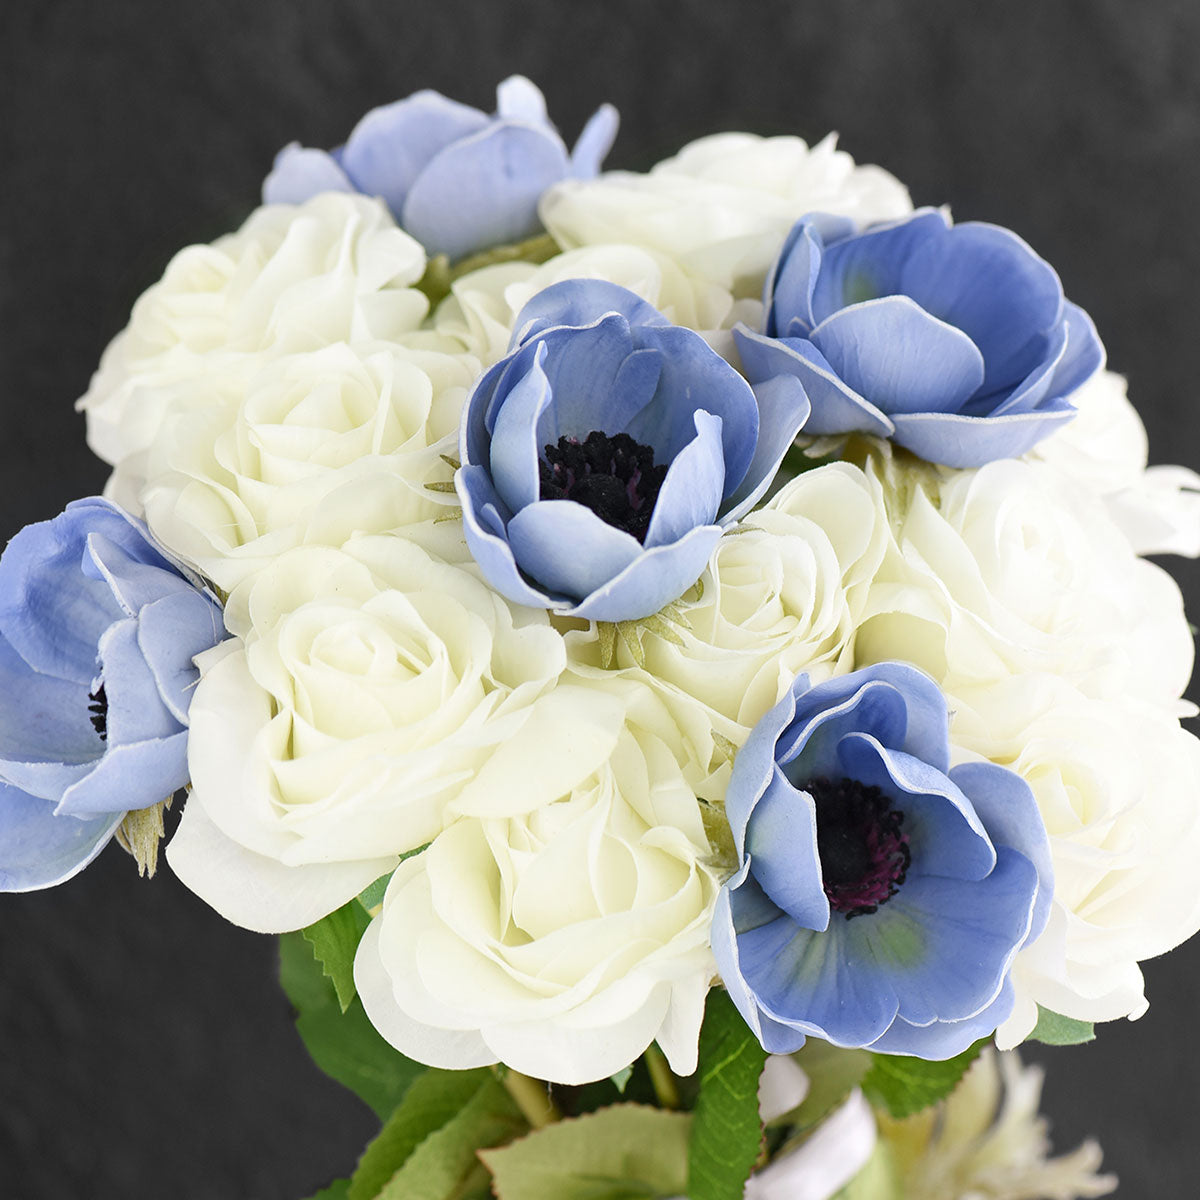 5 Long Stems (Light Blue) Anemone 'Real Touch' Artificial Flower